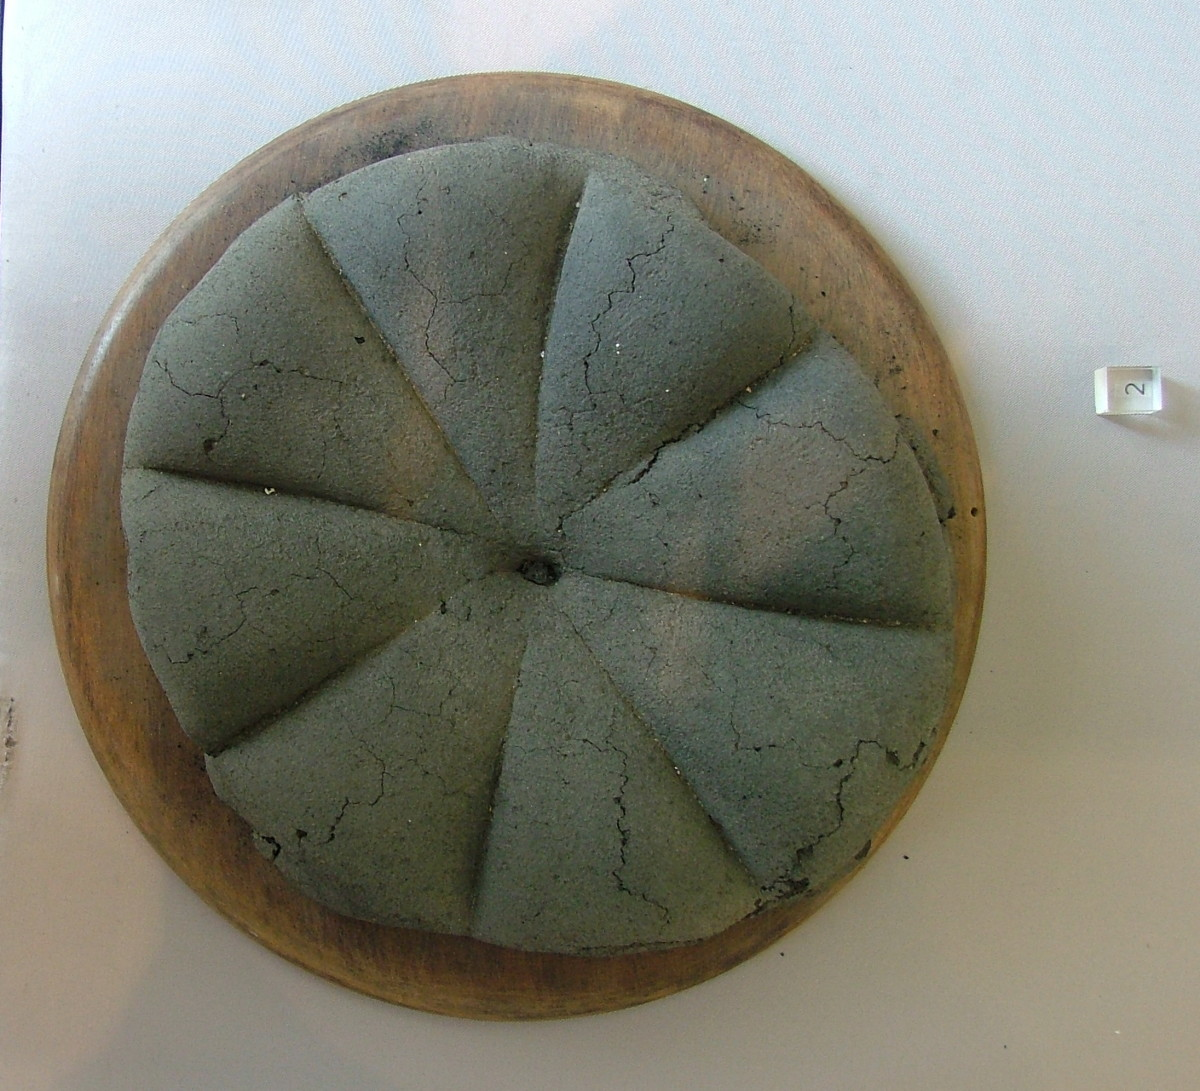 A preserved loaf of bread recovered from the archaeological site of Pompeii.